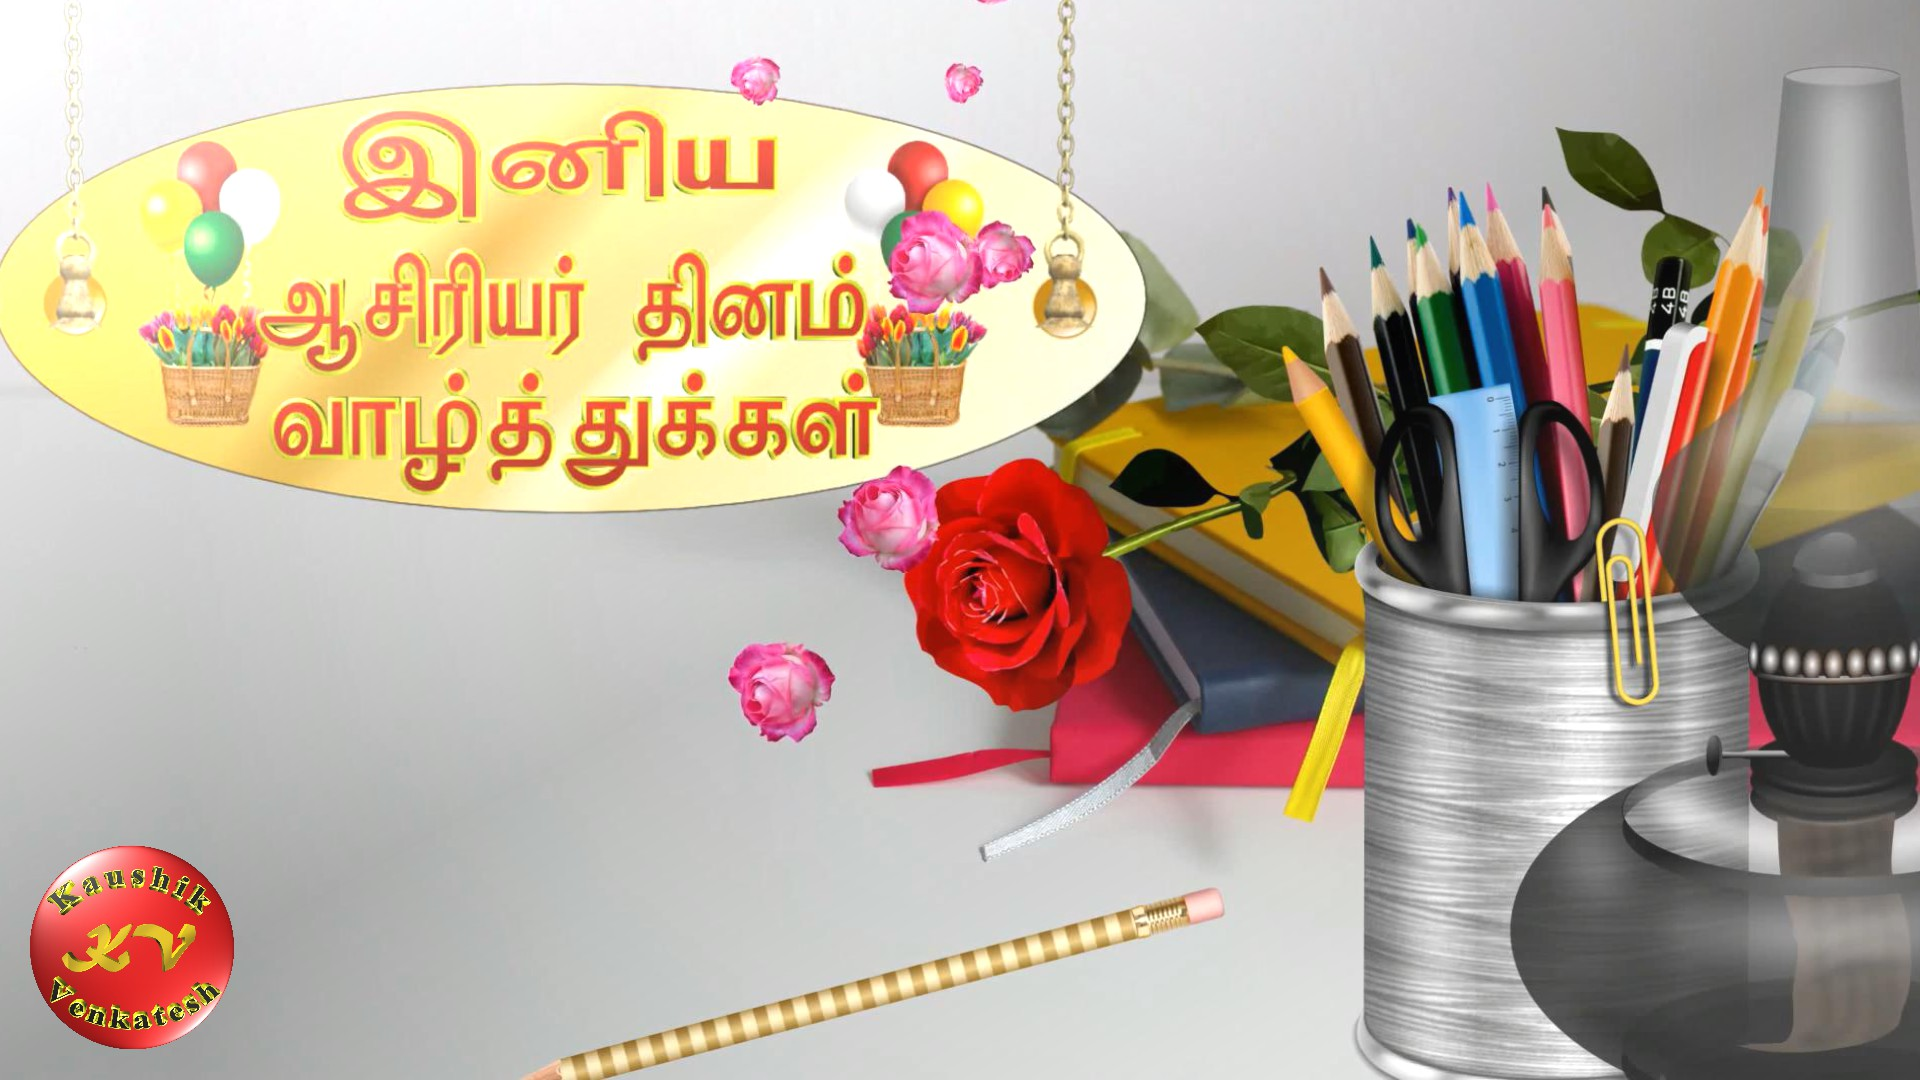 Greetings Image for September 5th (Teacher's Day) in Tamil